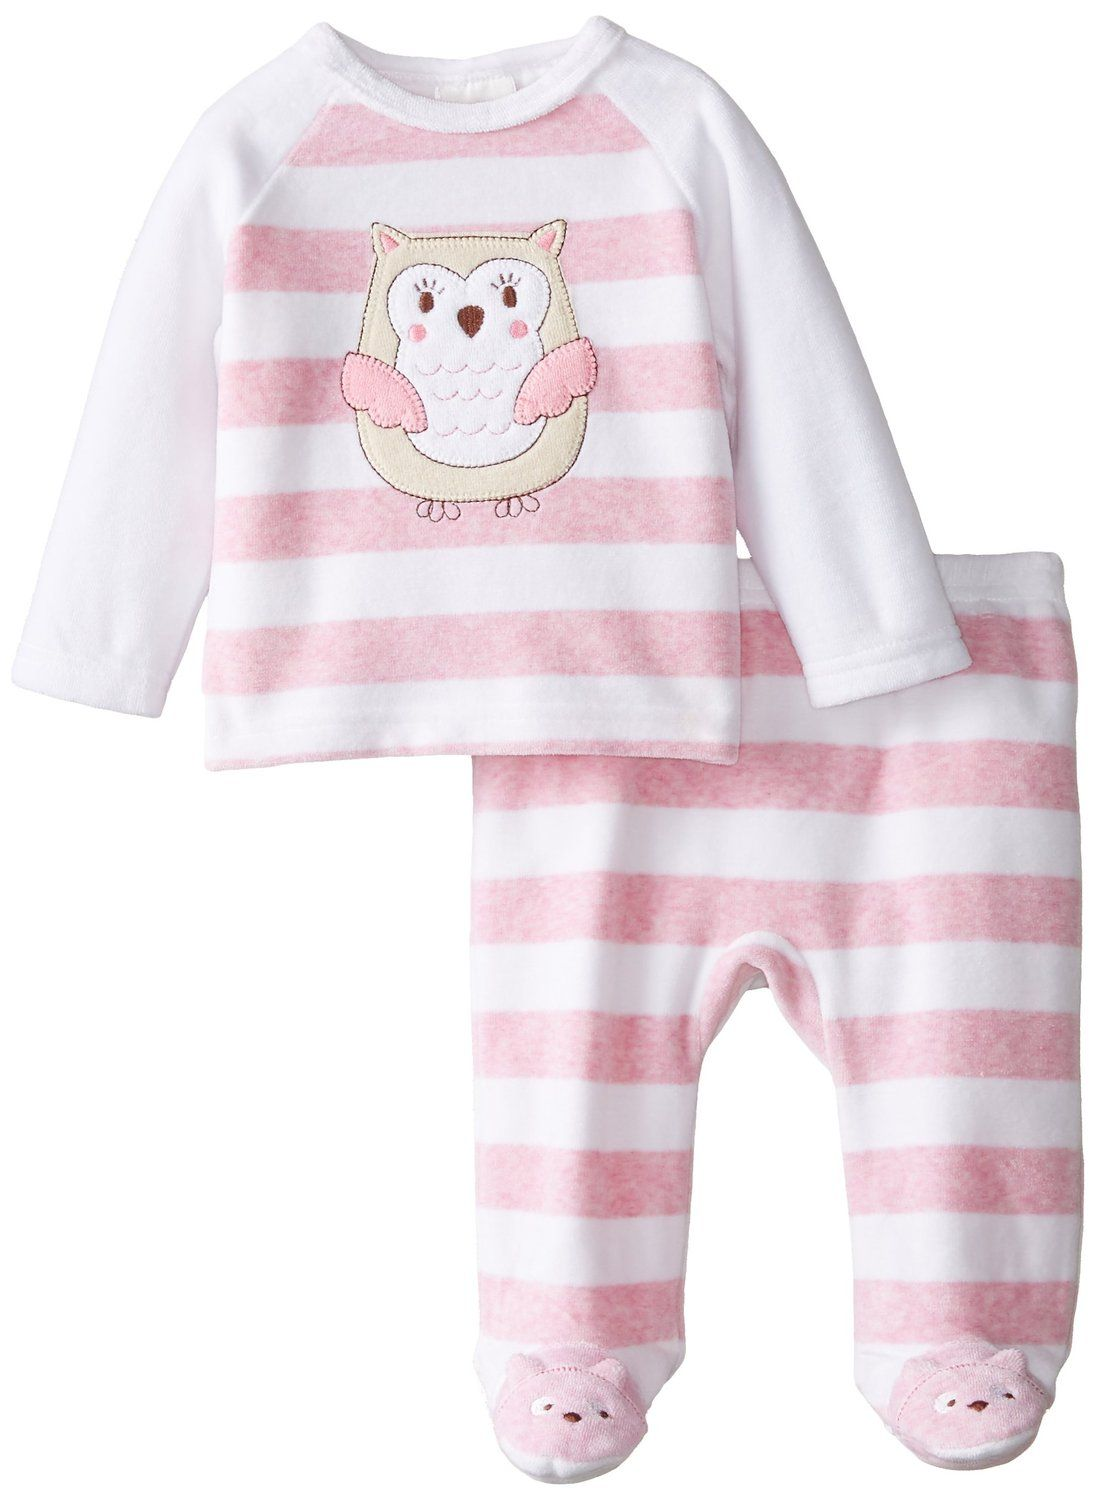 295574af36e3 Amazon.com  ABSORBA Baby-Girls Newborn Heathered Pink Velour Footed ...